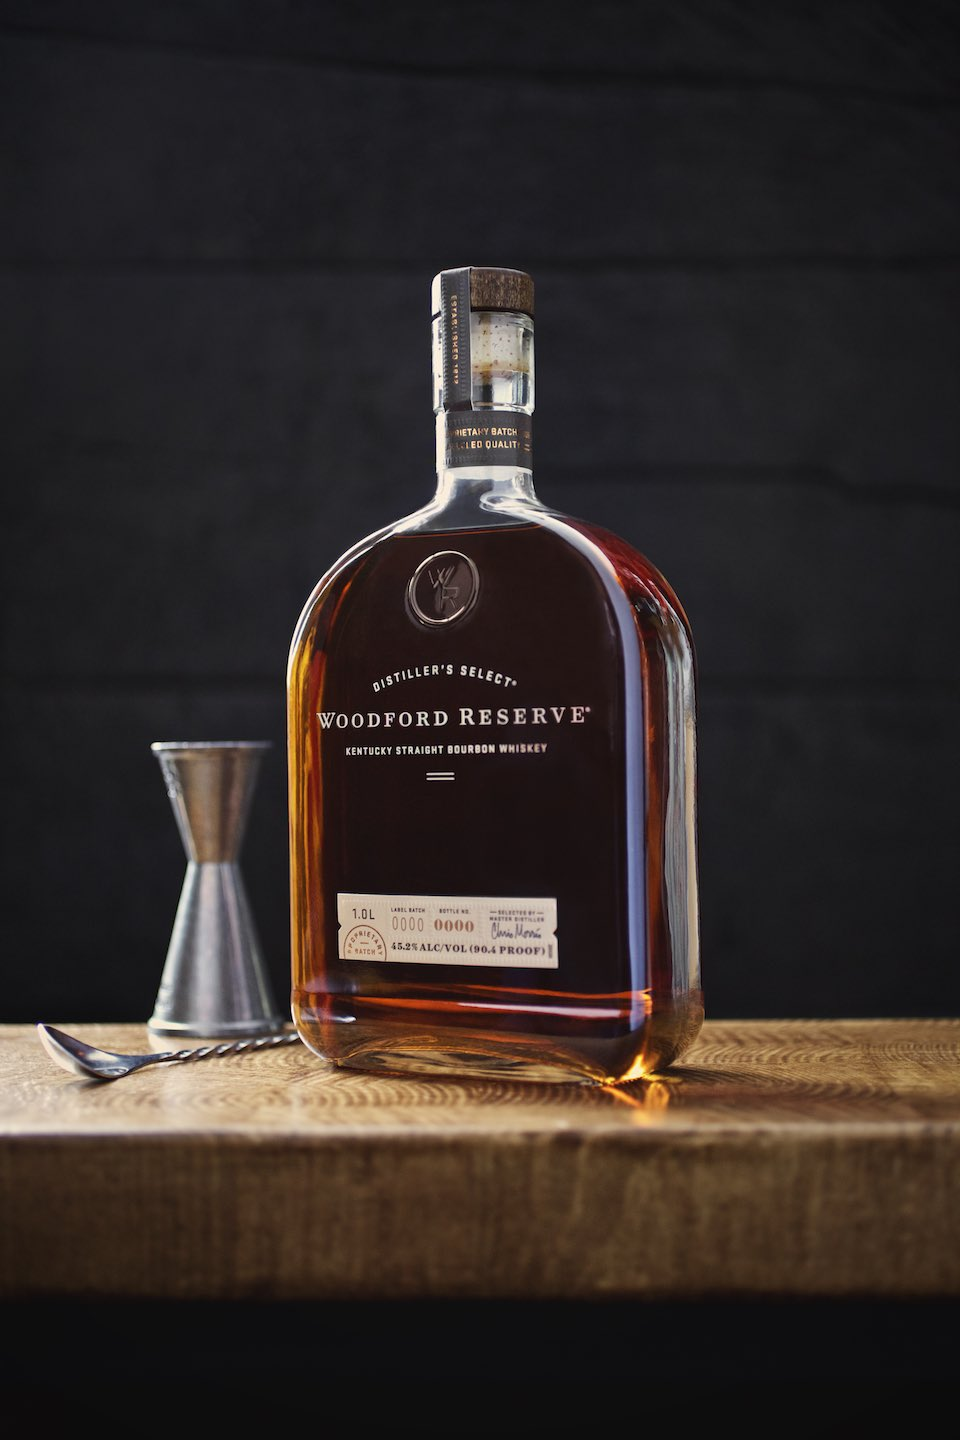 Bottle of unopened Woodford Reserve bourbon whiskey on a wood bar top.